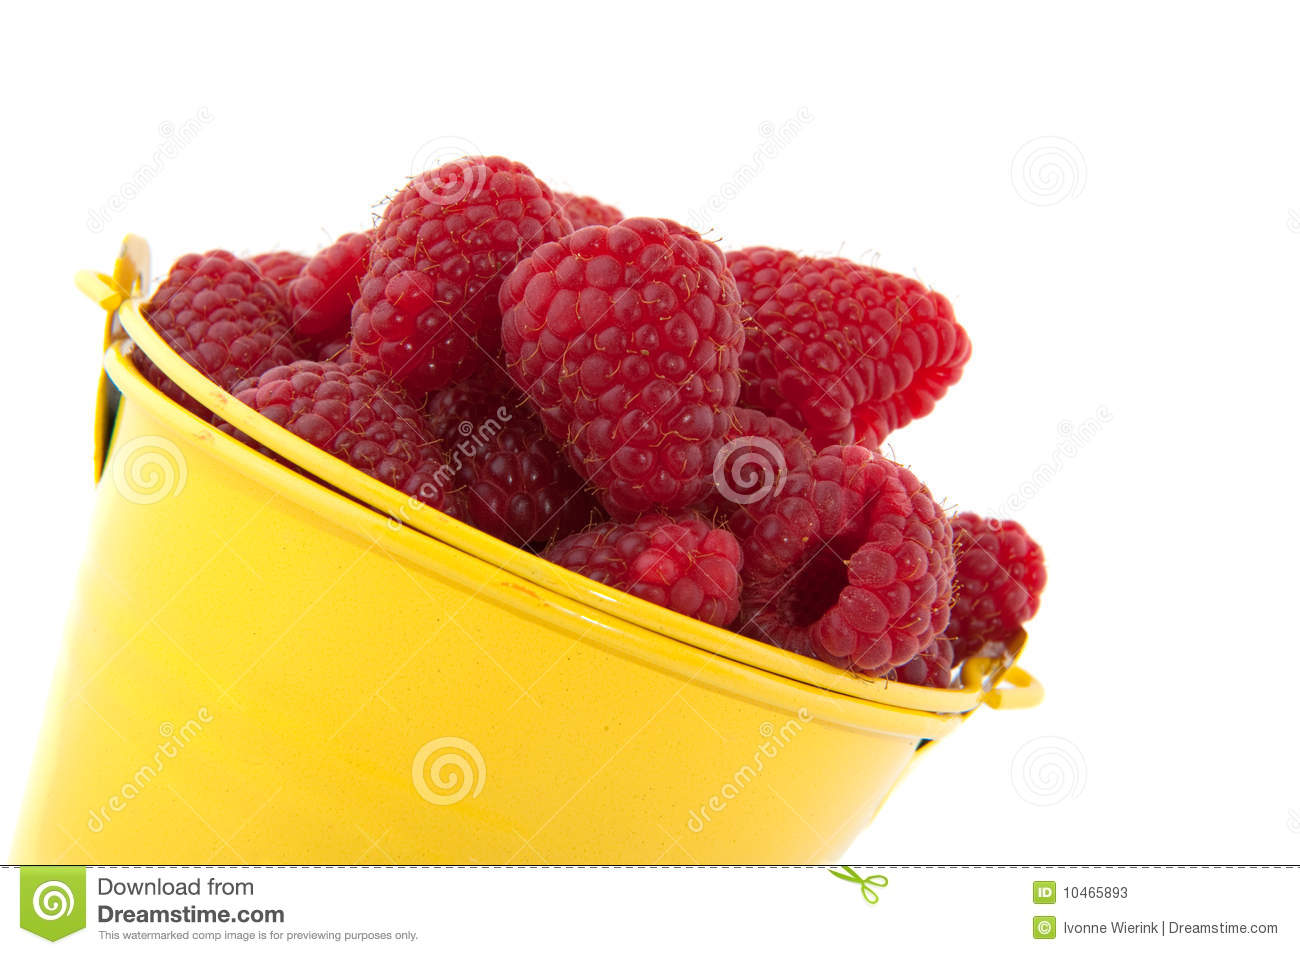 Bucket raspberries